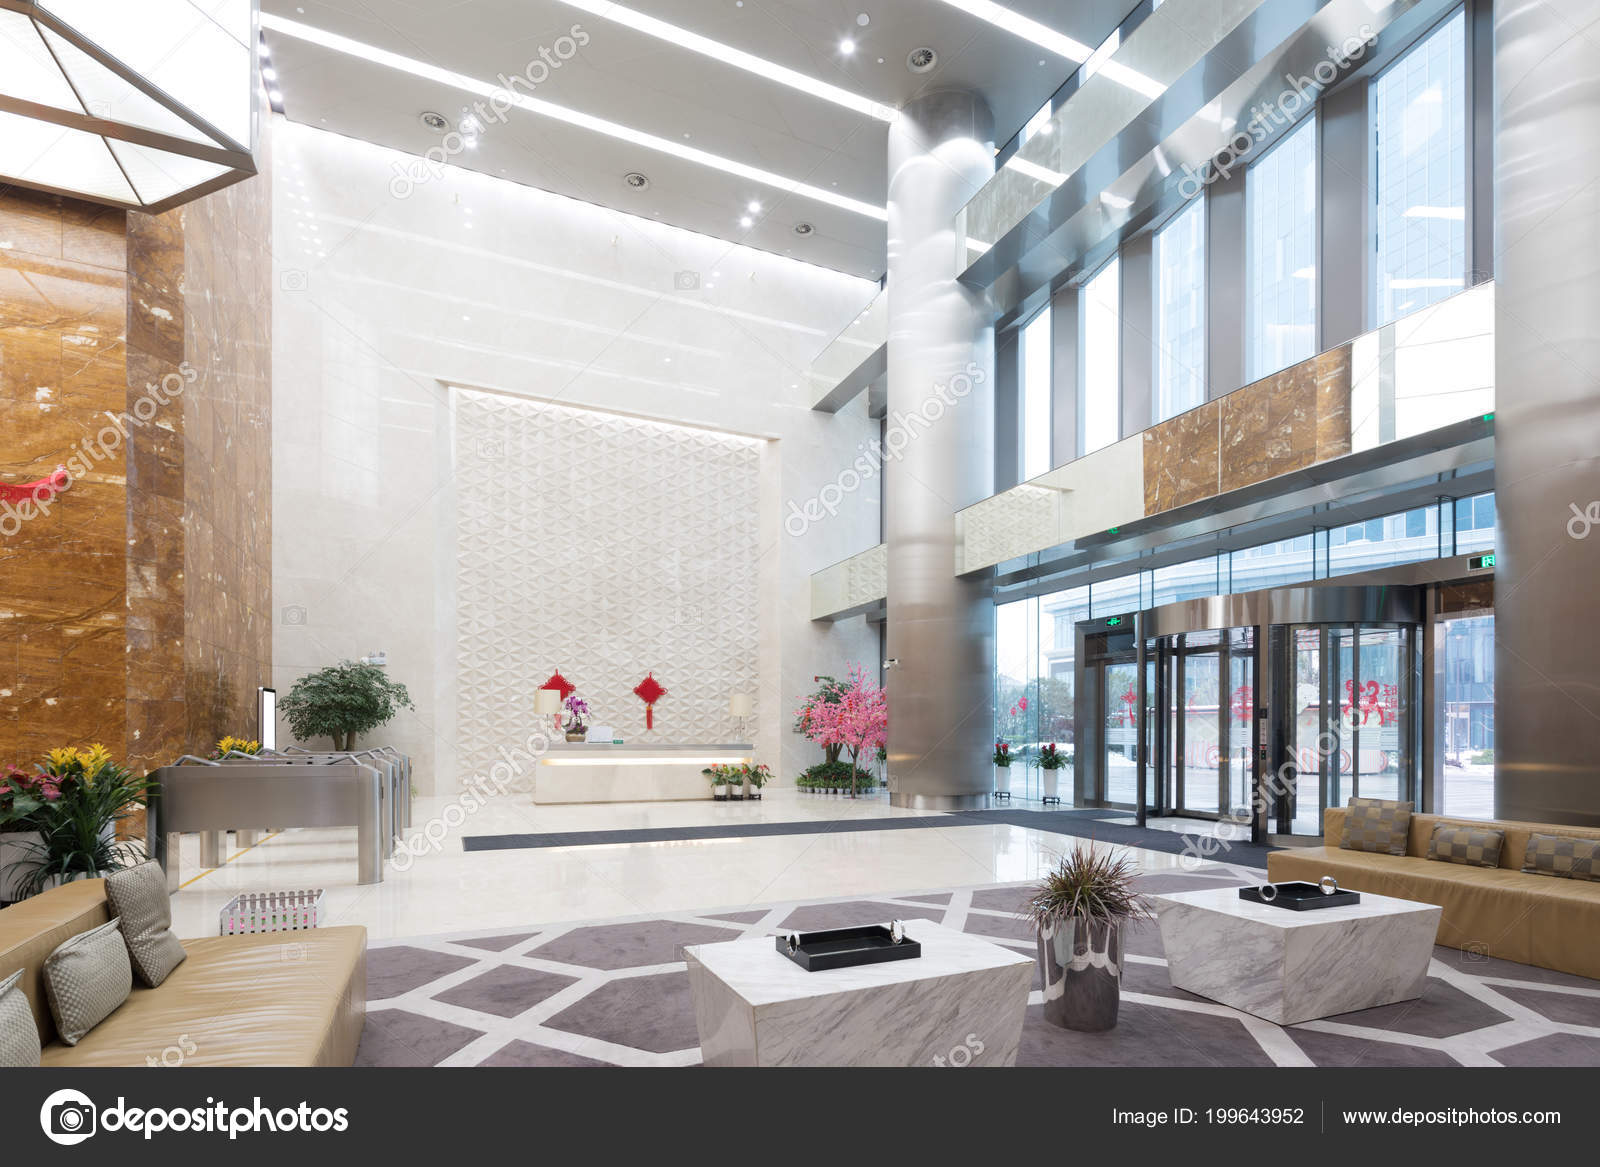 Modern office lobby Marble Interior Modern Office Lobby Stock Photo Depositphotos Interior Modern Office Lobby Stock Photo Zhudifeng 199643952